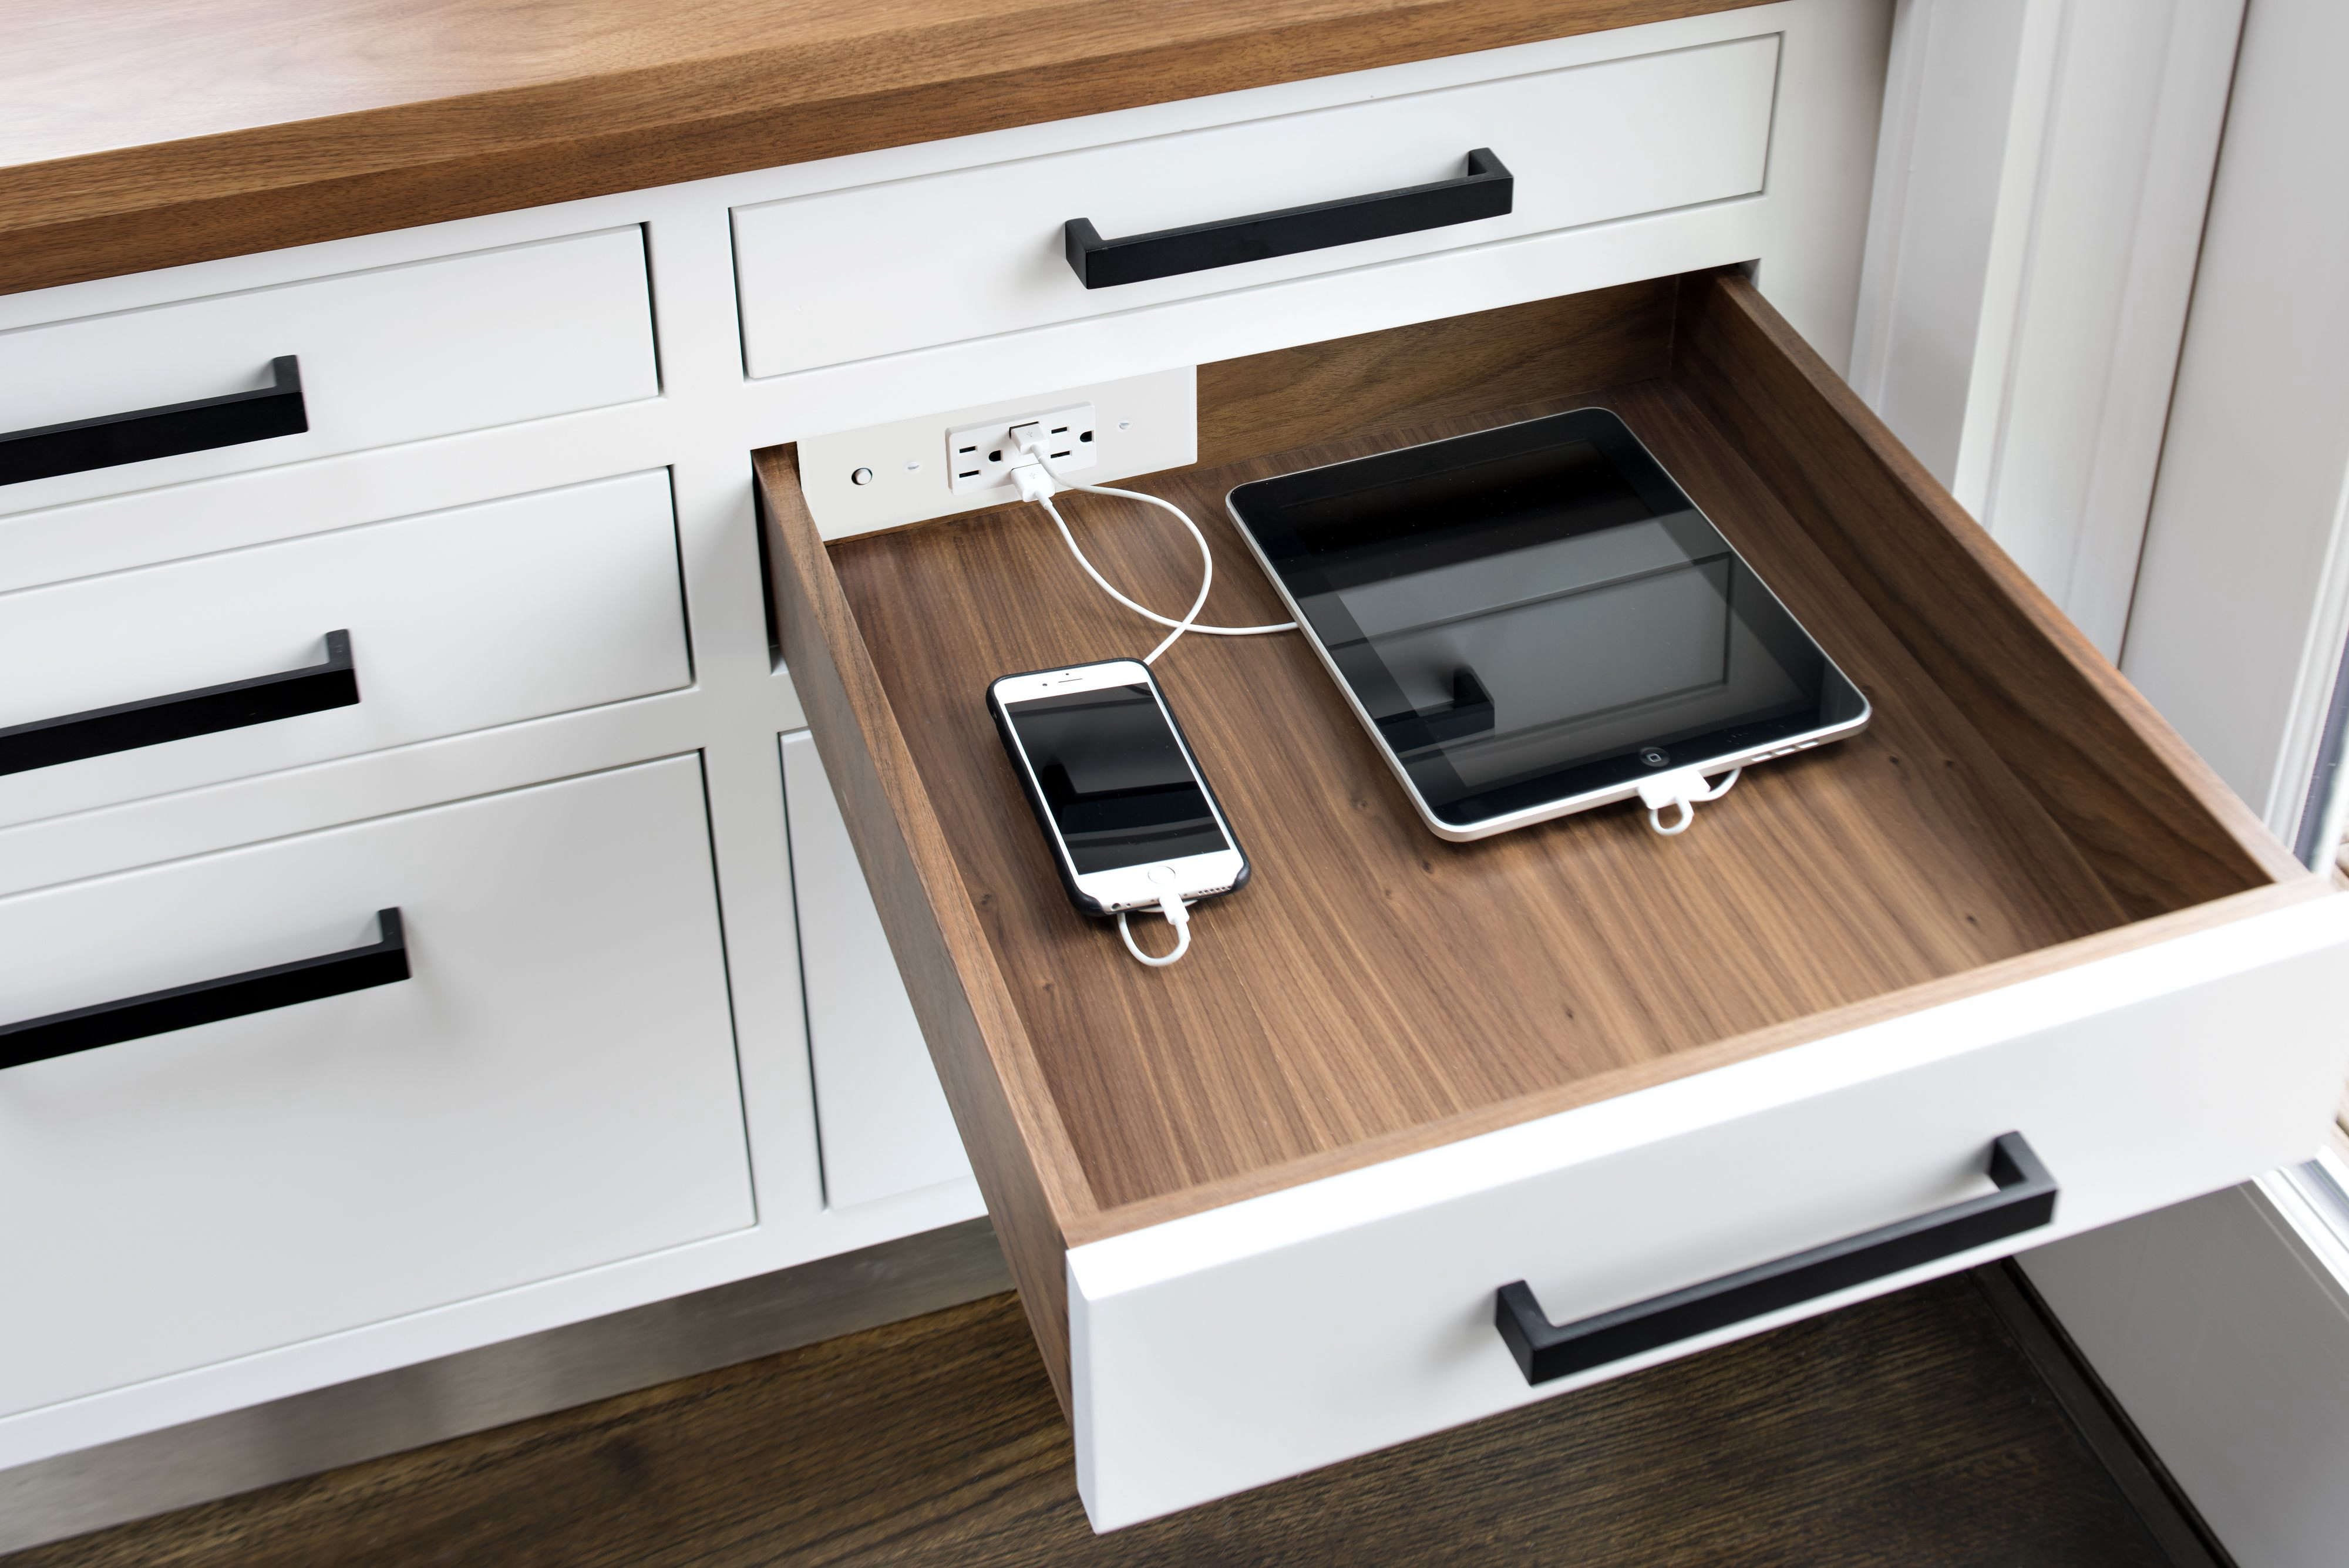 Docking Drawer in-drawer charging outlet.